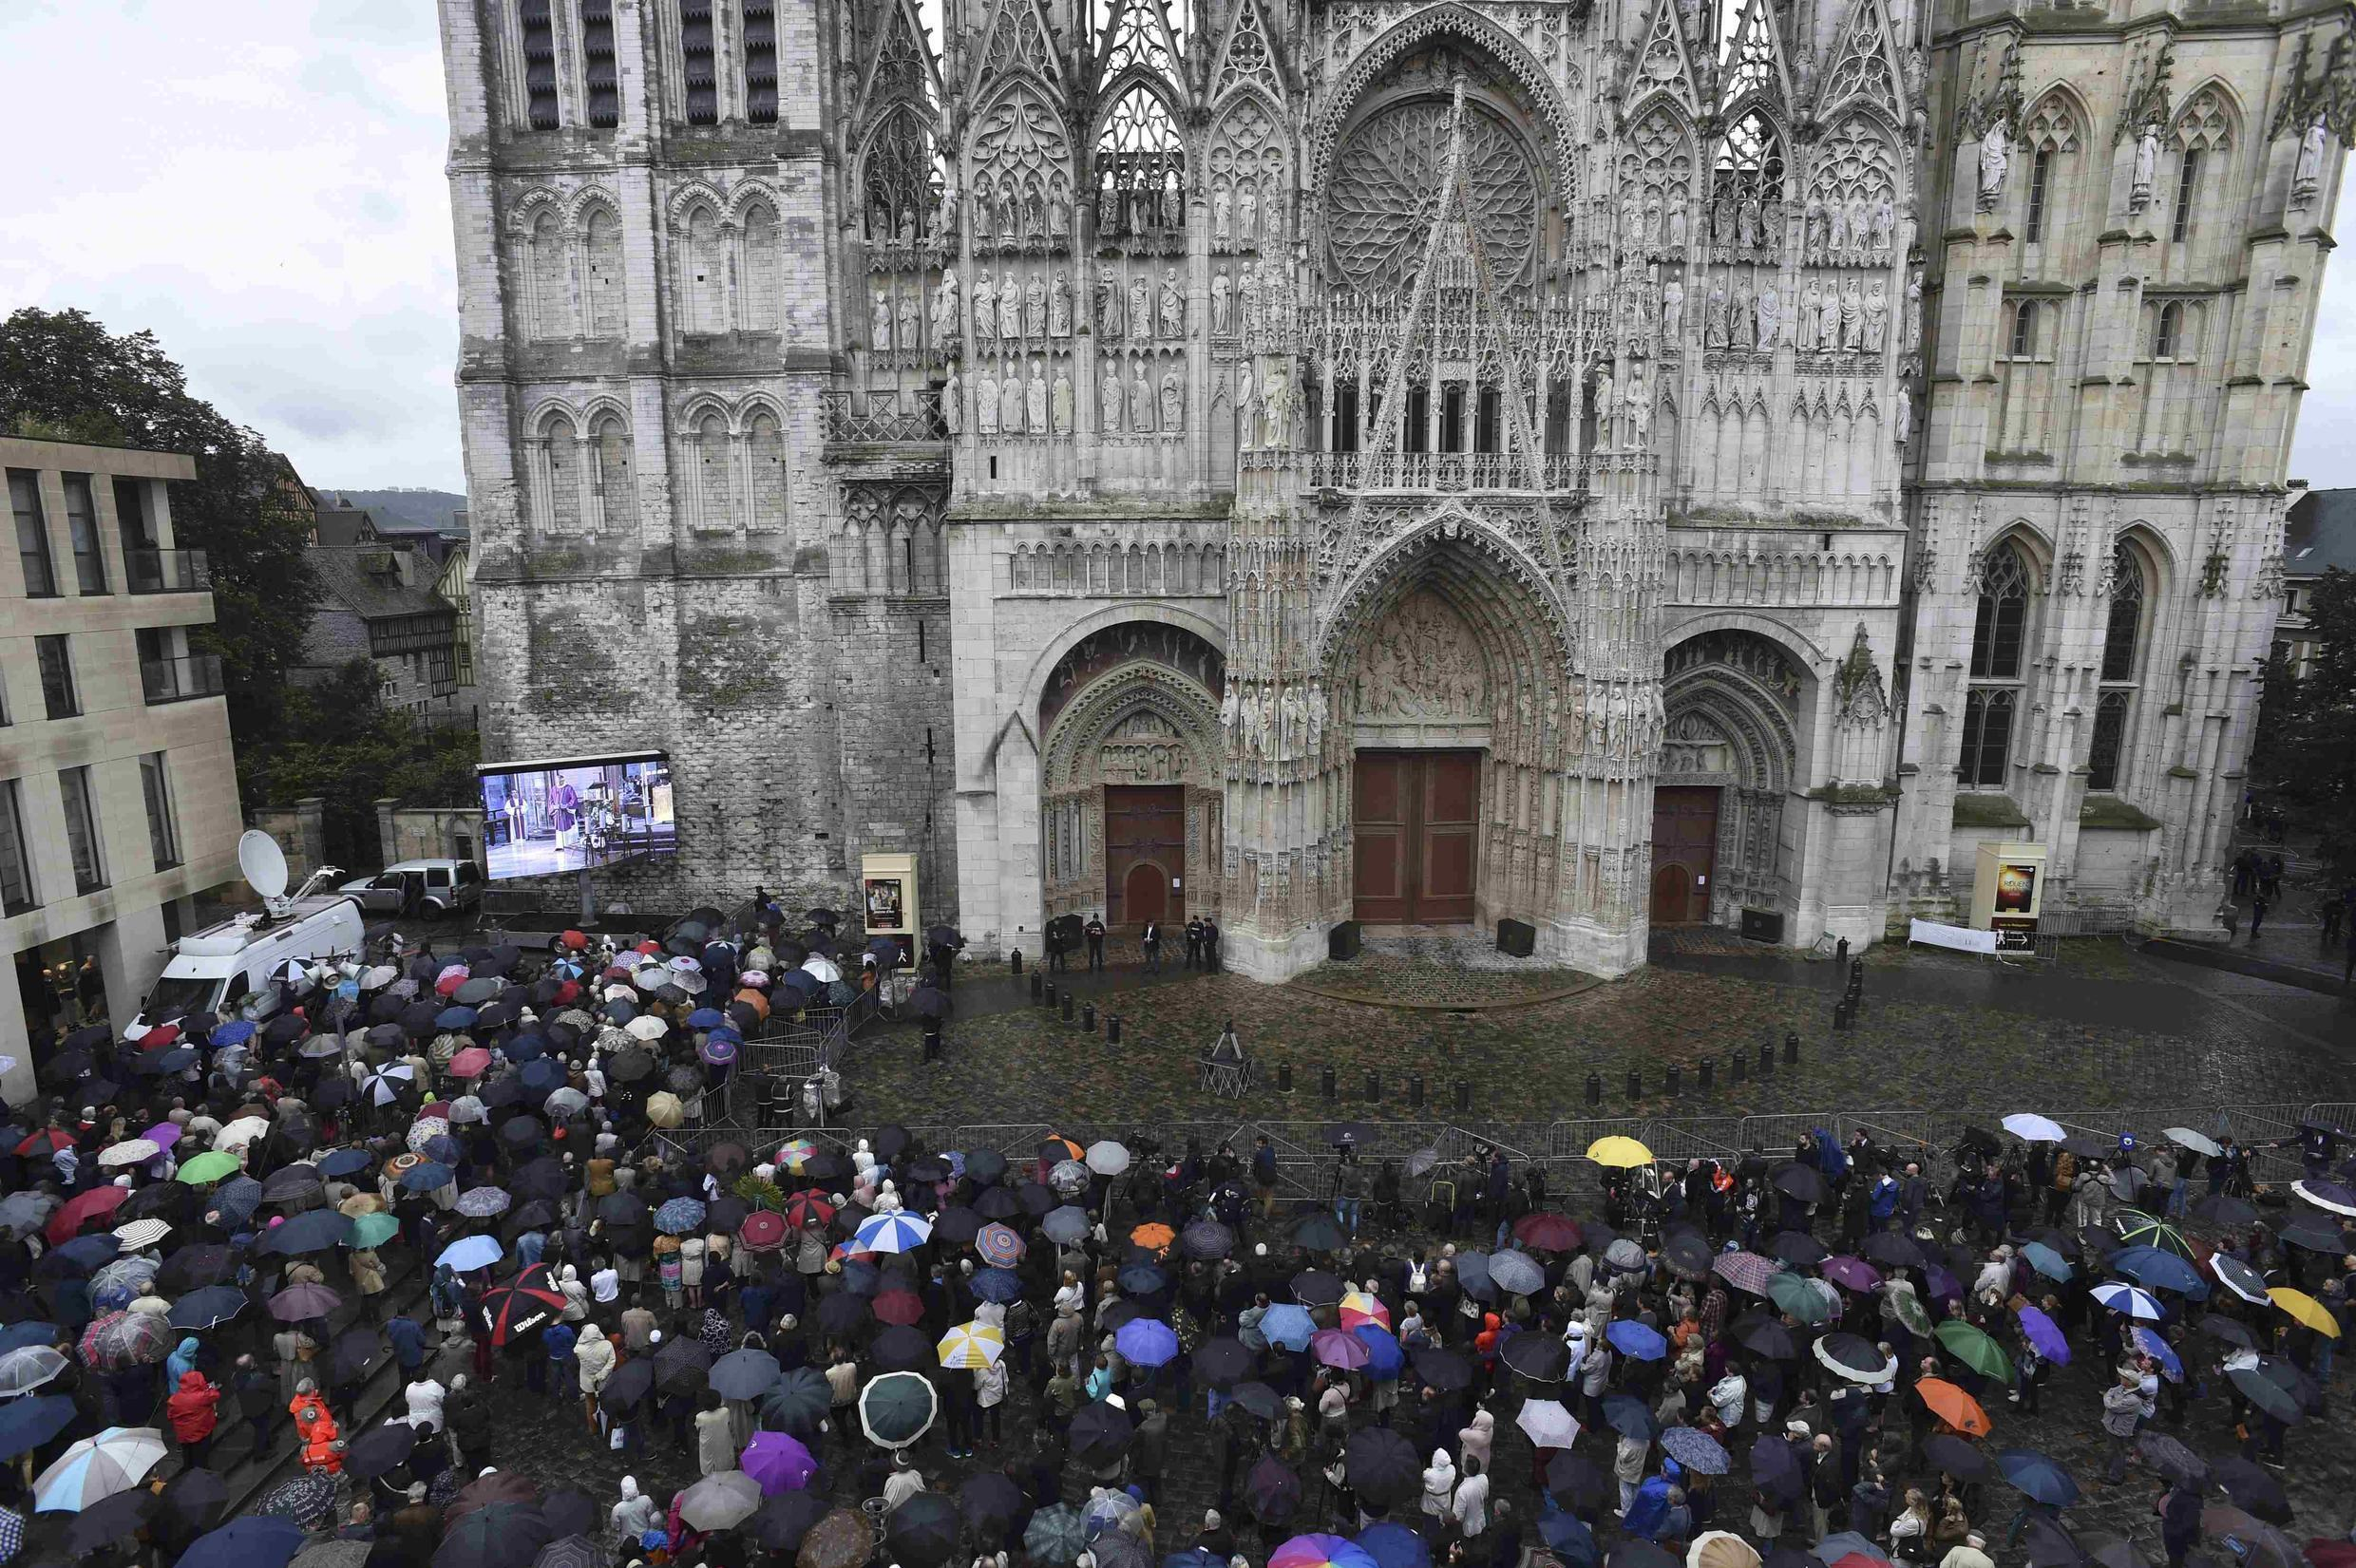 Mourners at Rouen Cathedral for a service in memory of Father Jacques Hamel